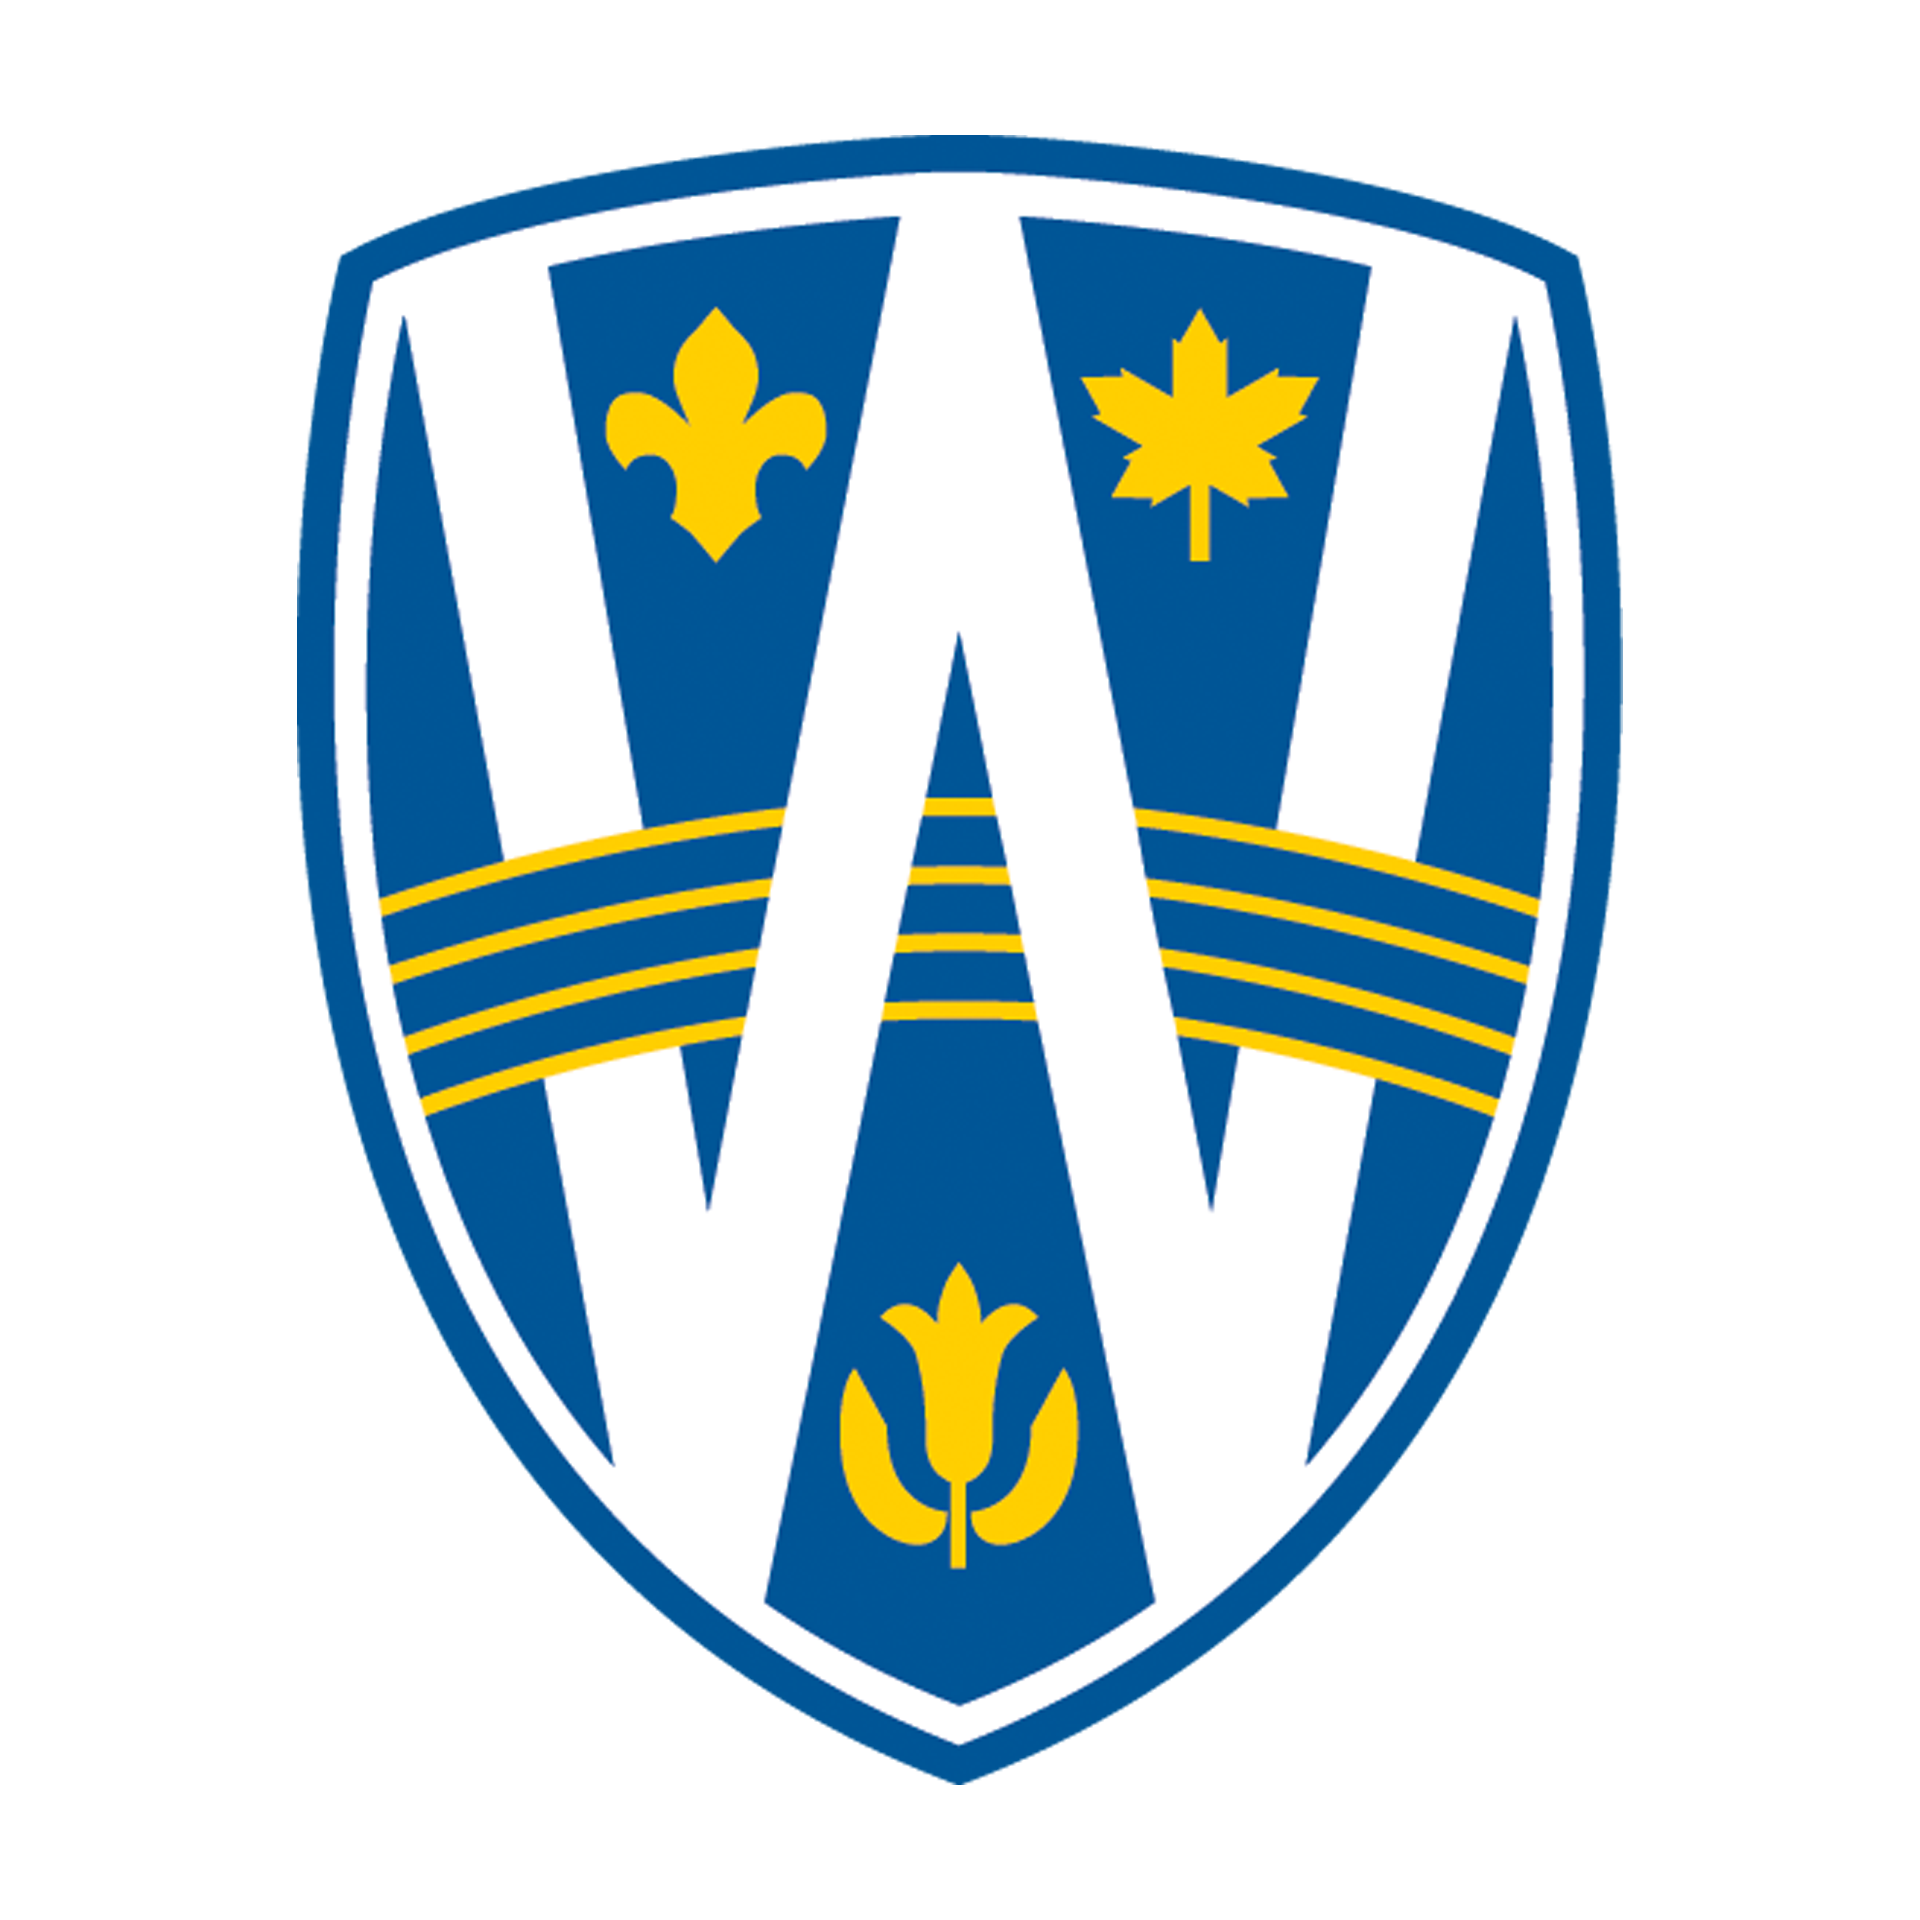 University of Windsor Shield